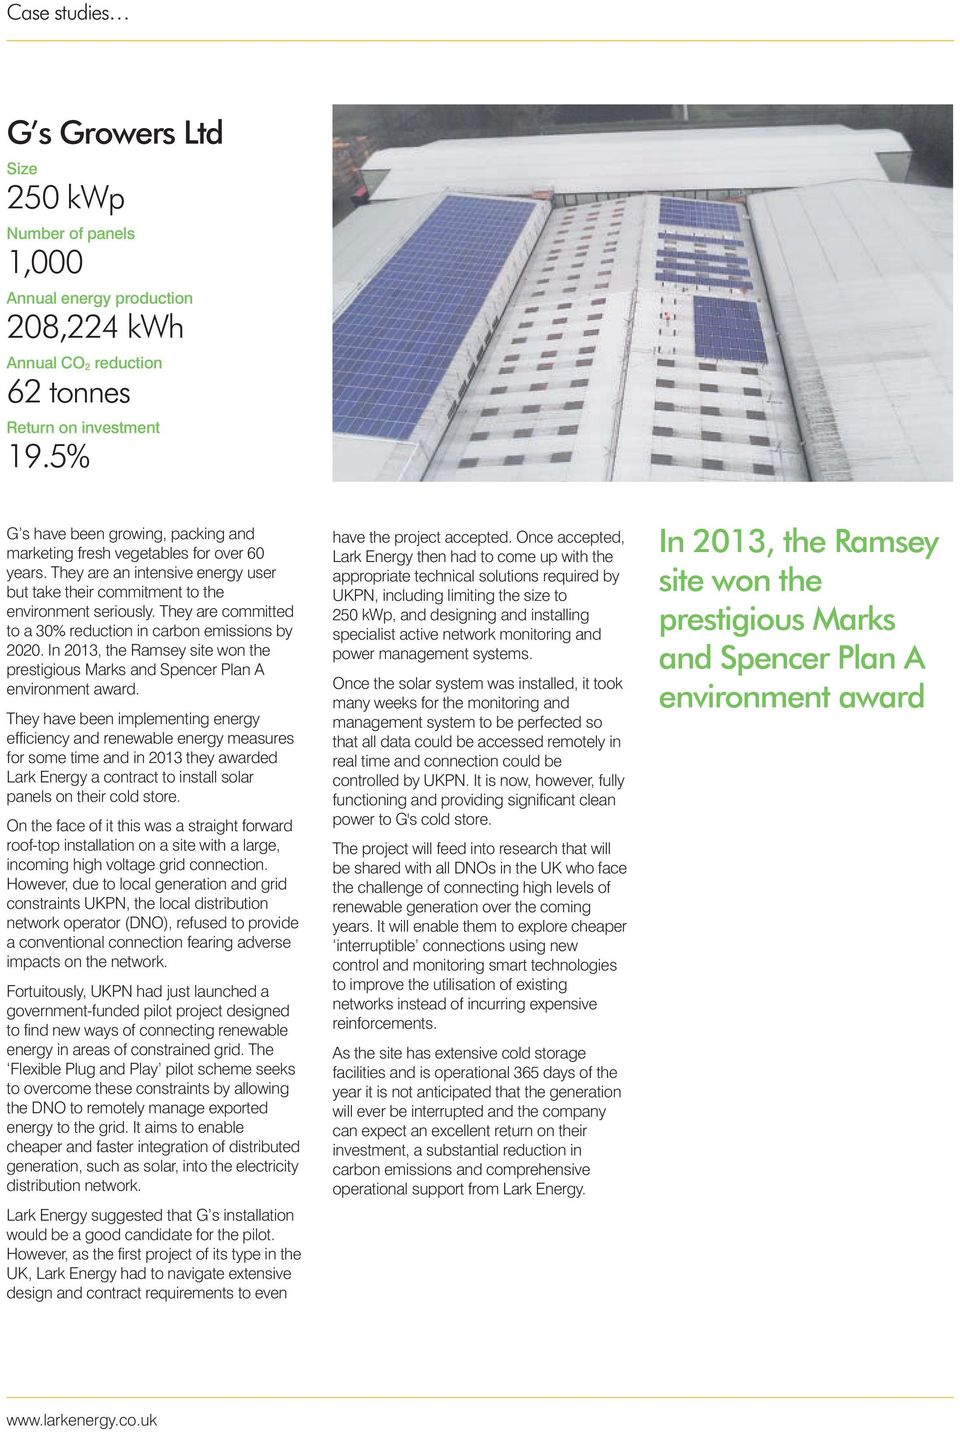 In 2013, the Ramsey site won the prestigious Marks and Spencer Plan A environment award.